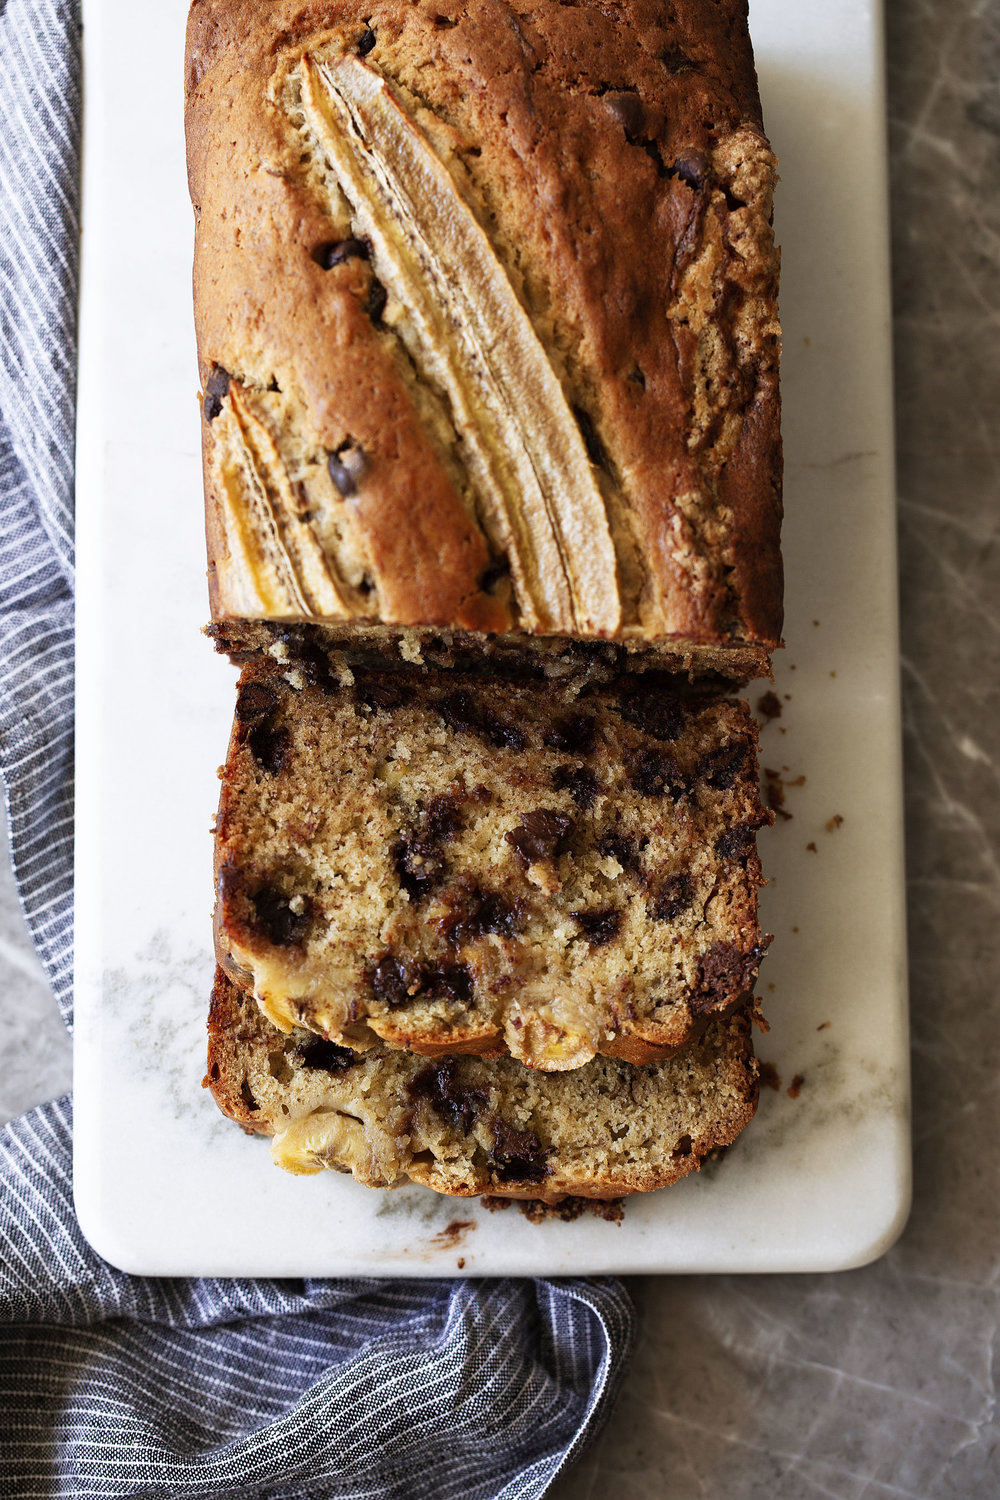 chocolate chip banana bread baked and sliced